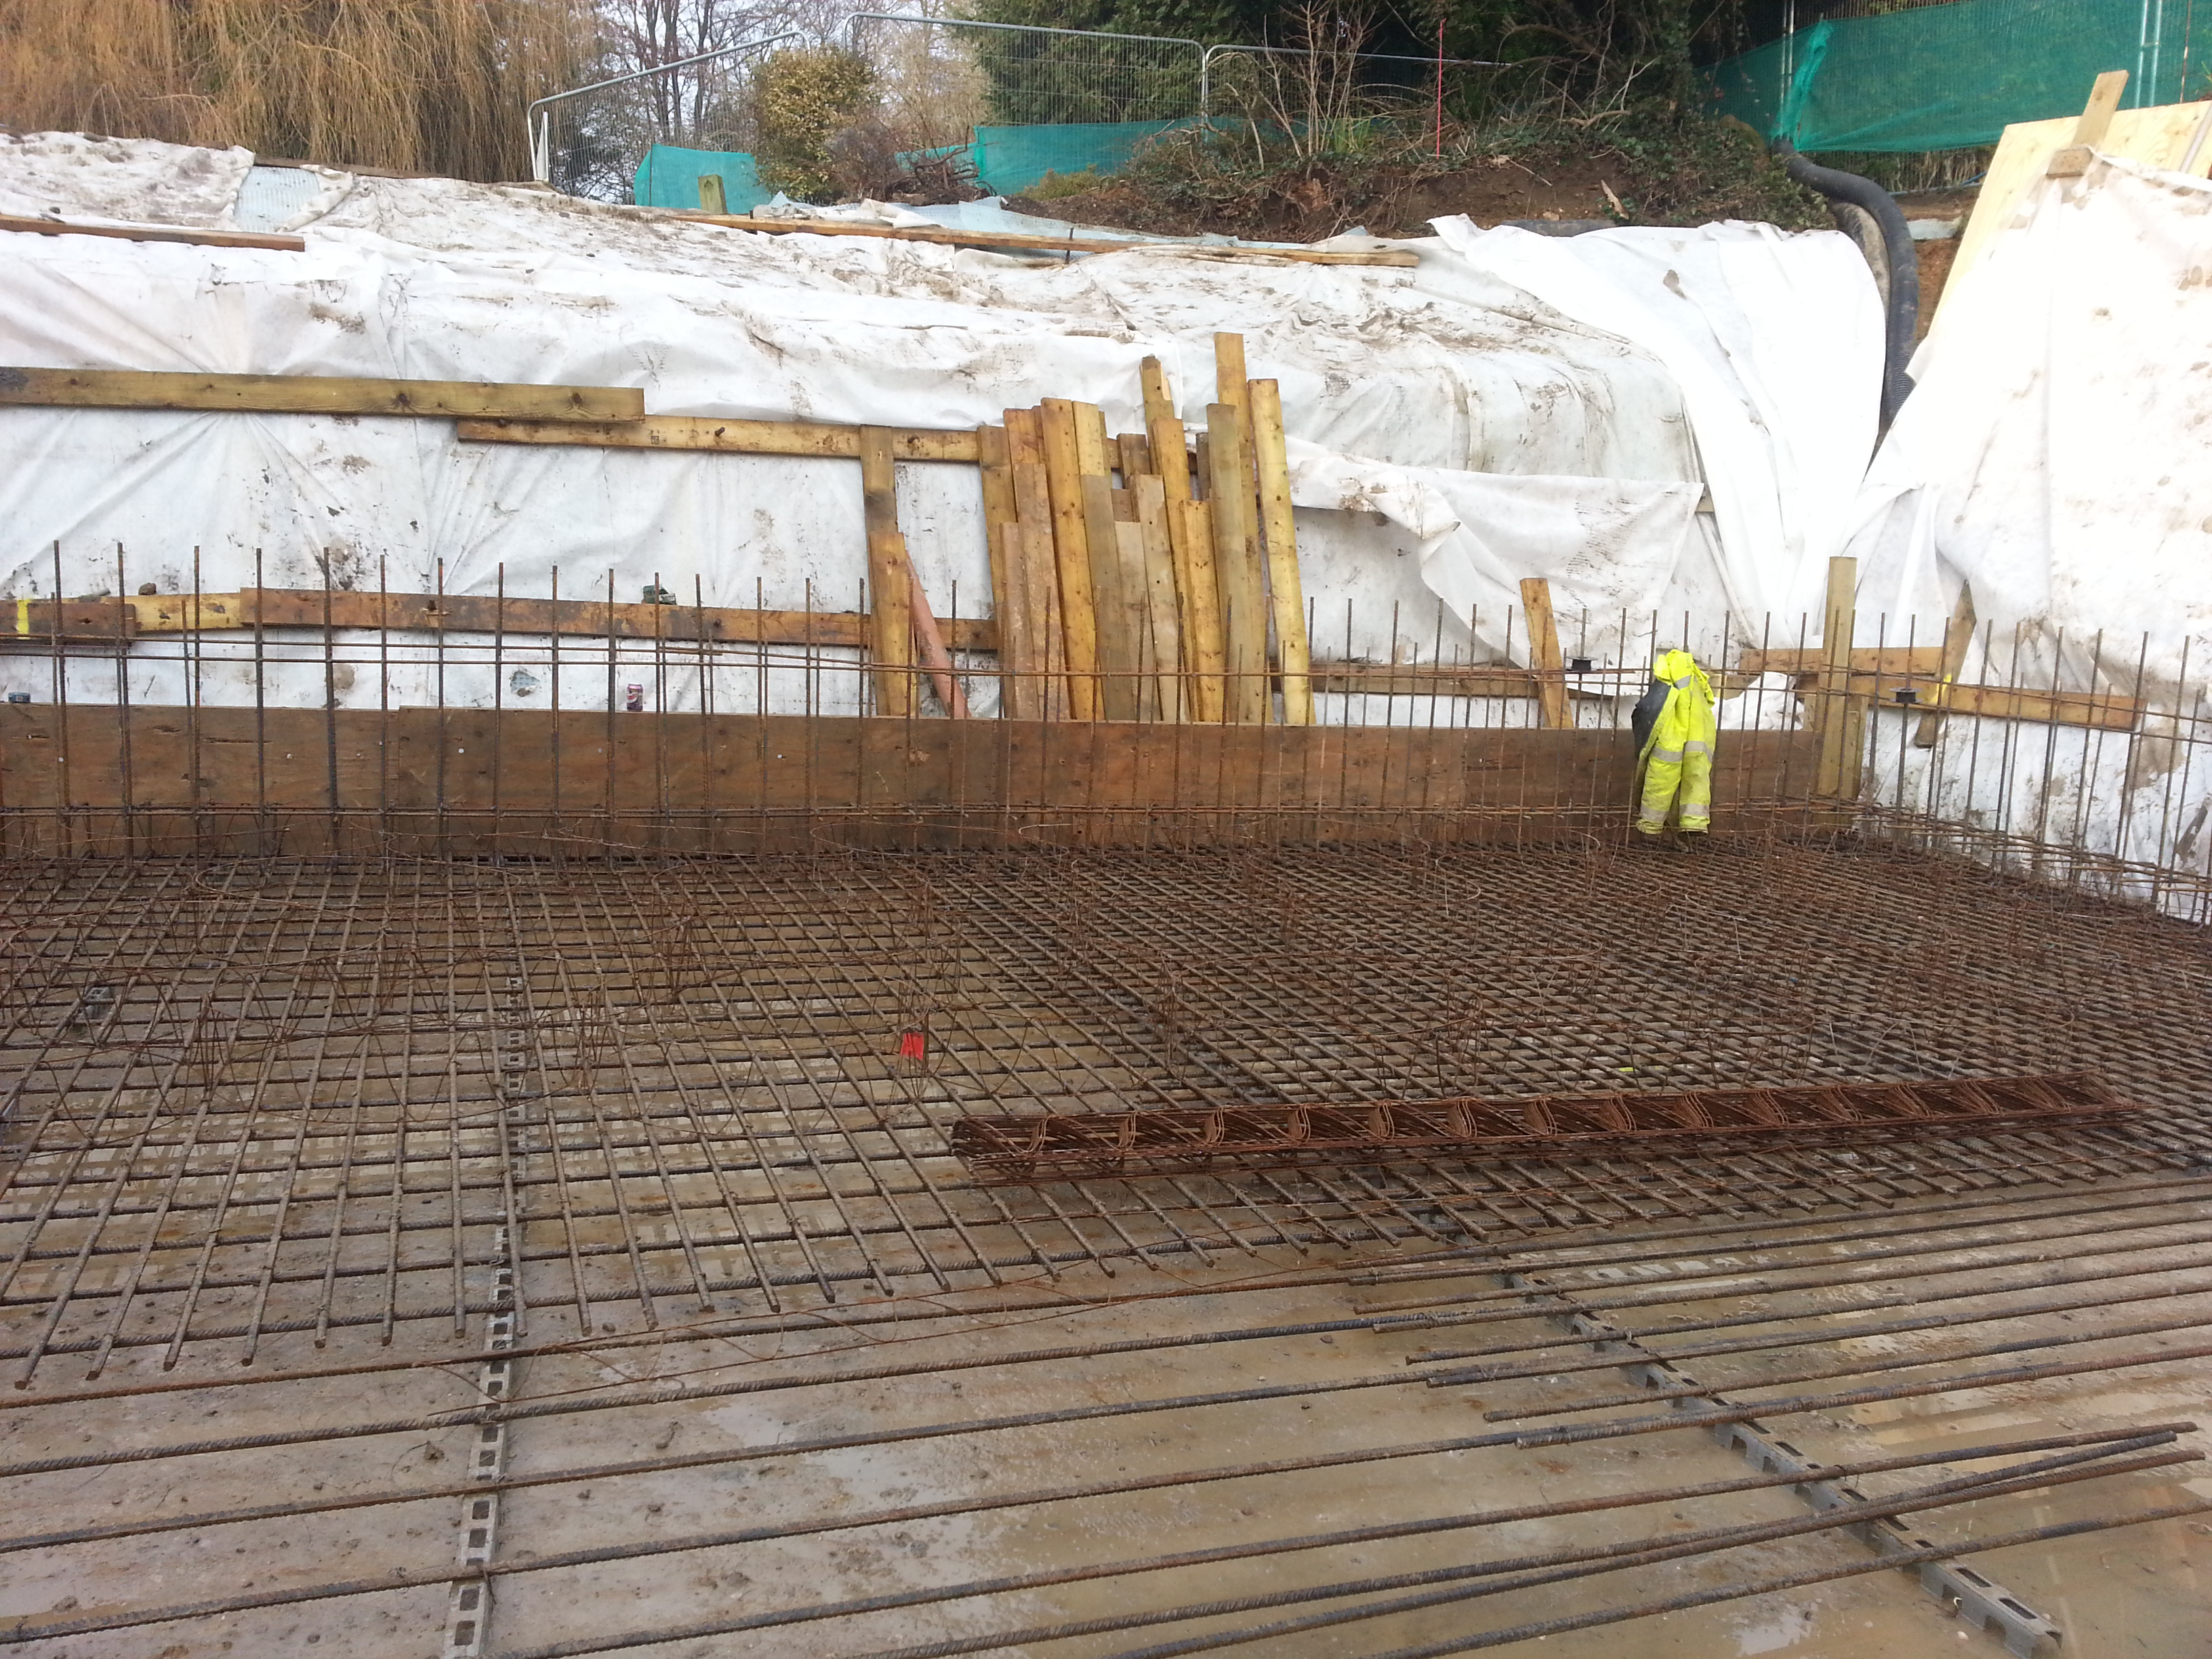 Reinforcing for the floor built up in layers to give maximum strength